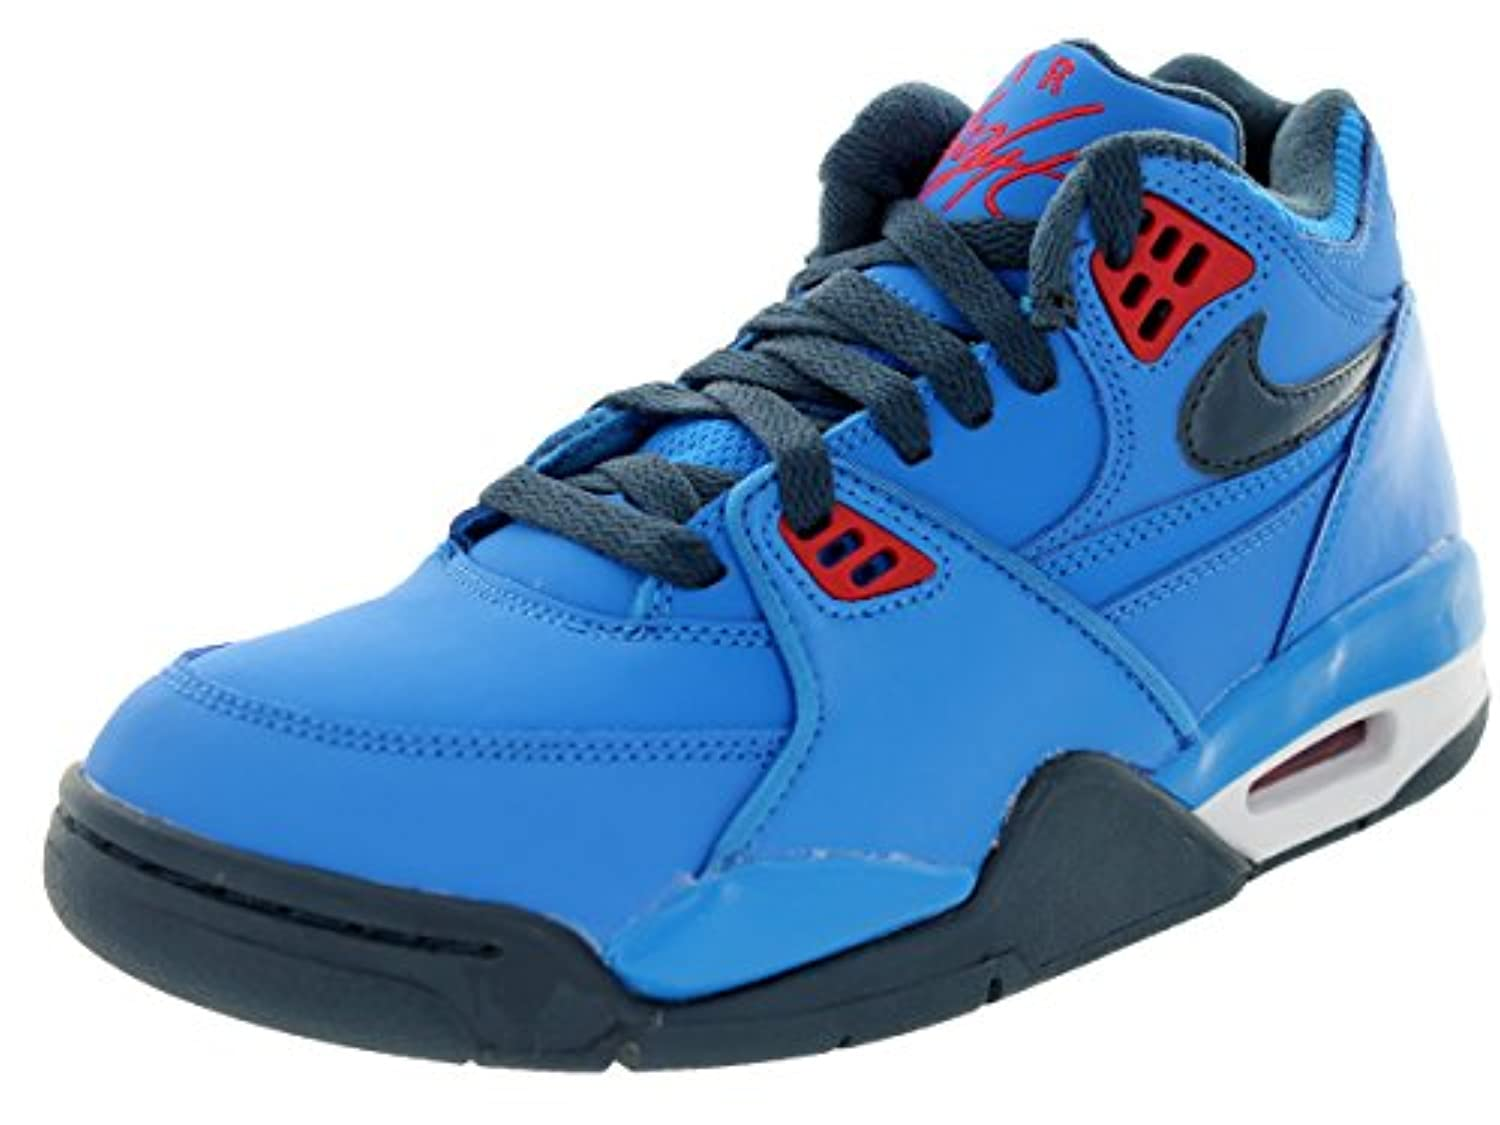 ... Nike Air Flight 89 (Kids) - Photo Blue / Squadron Blue-Hyper Red ...